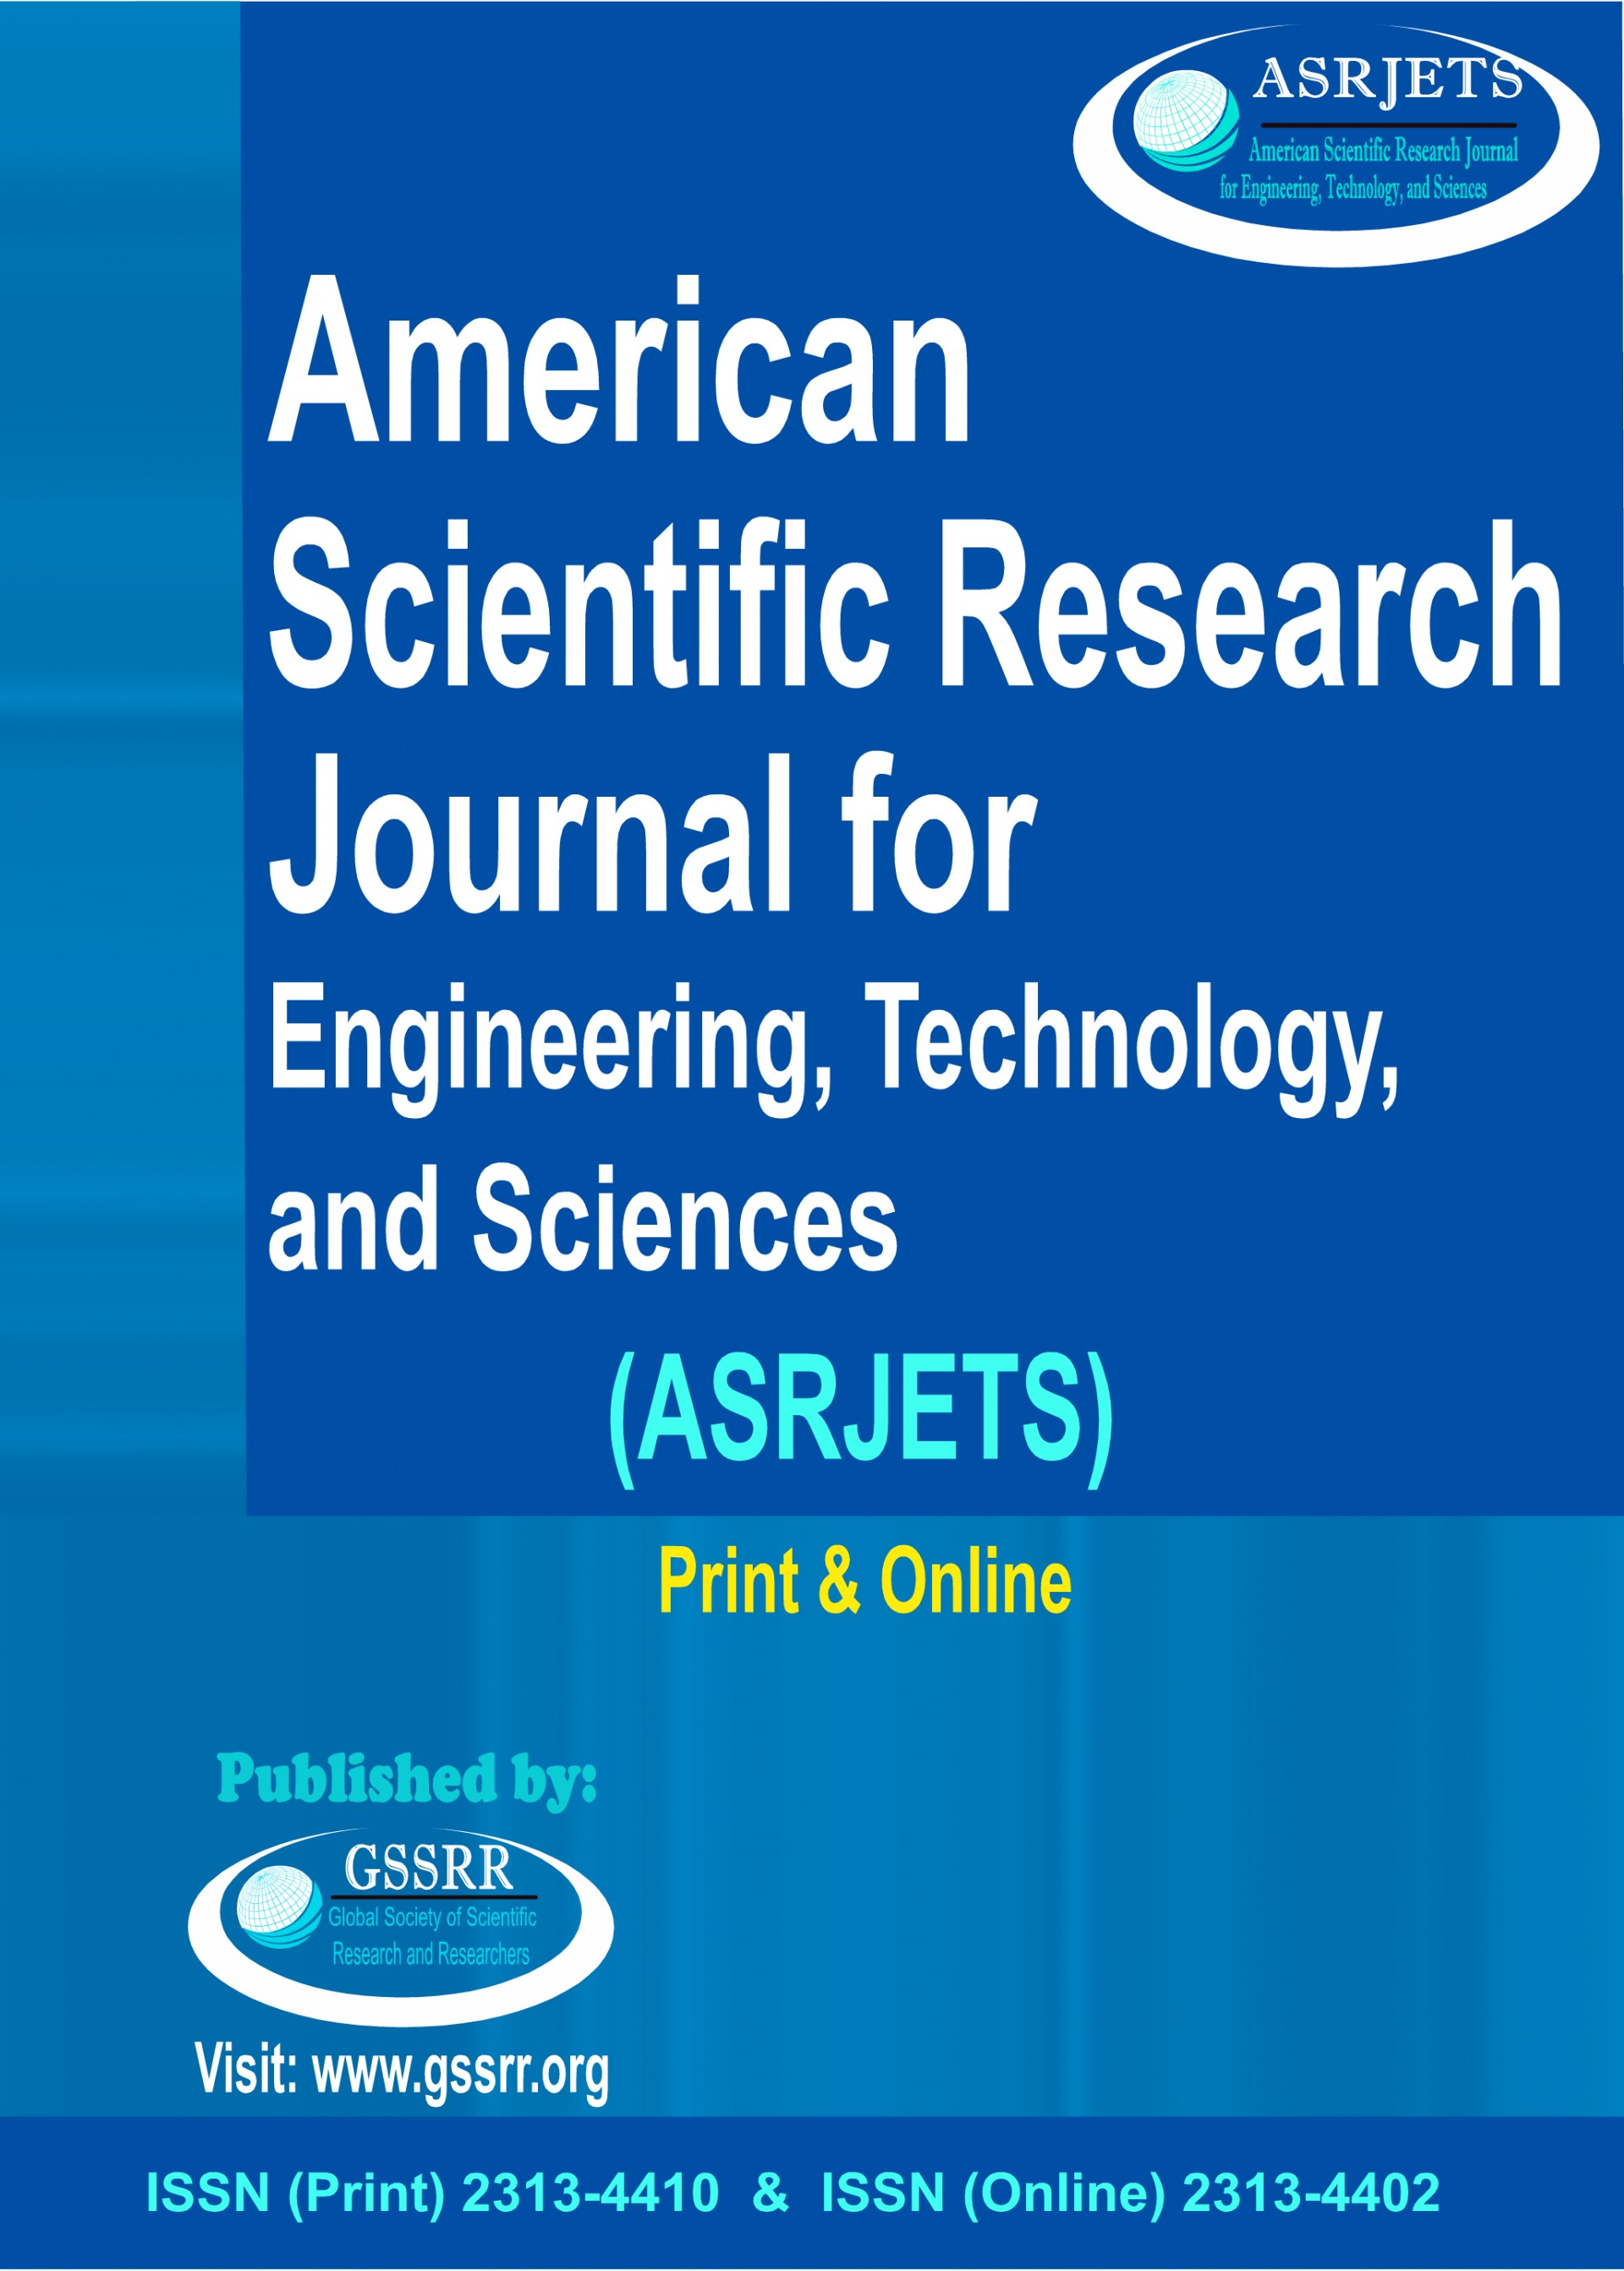 011 Online Researchs Asrjets Unusual Research Papers Voting System Paper Scientific Free Download 1920